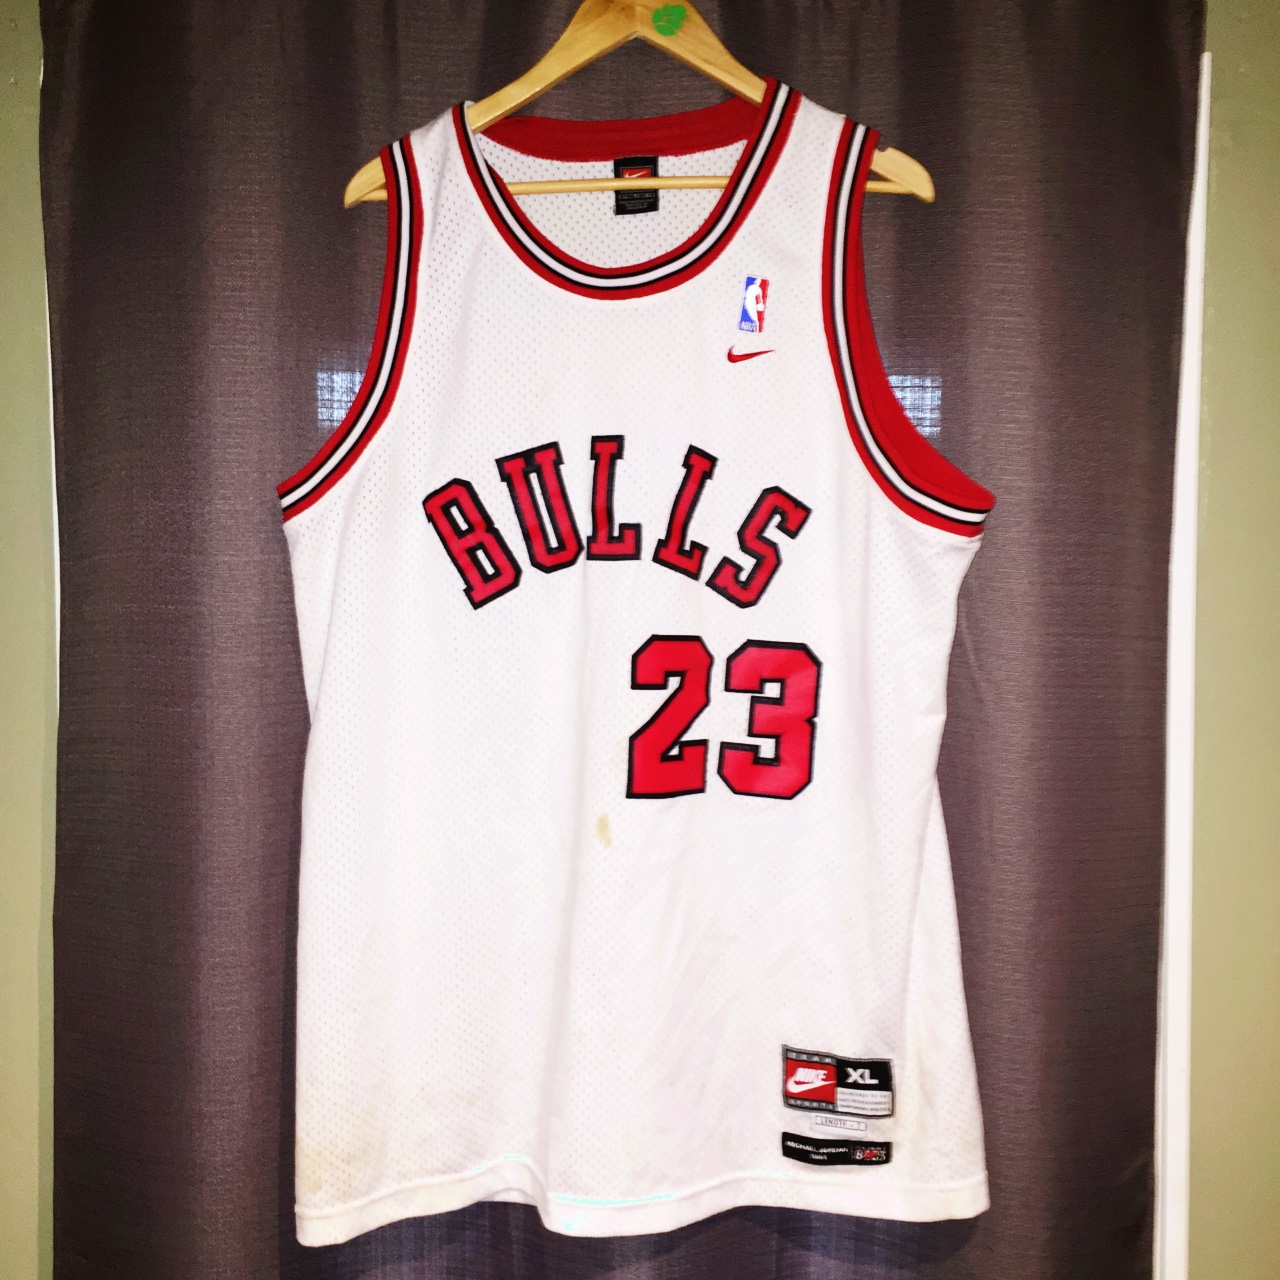 wholesale dealer 9d254 ec9ae Nike Team Flight 8403 Jordan jersey - Depop